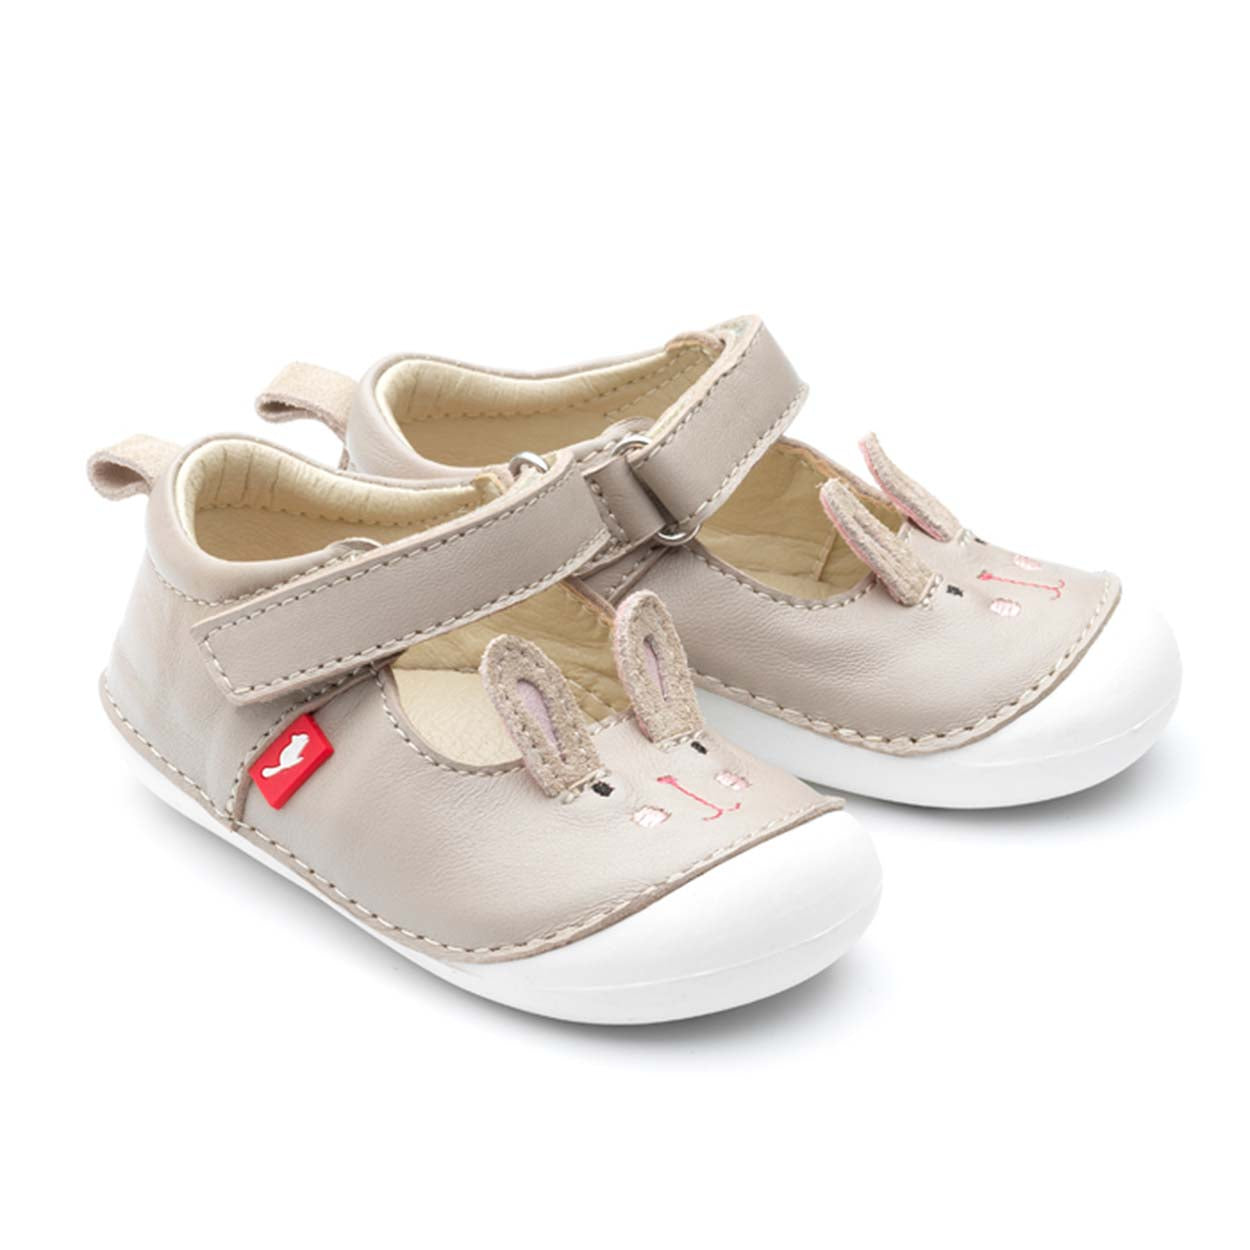 Lola Bunny Baby Shoes